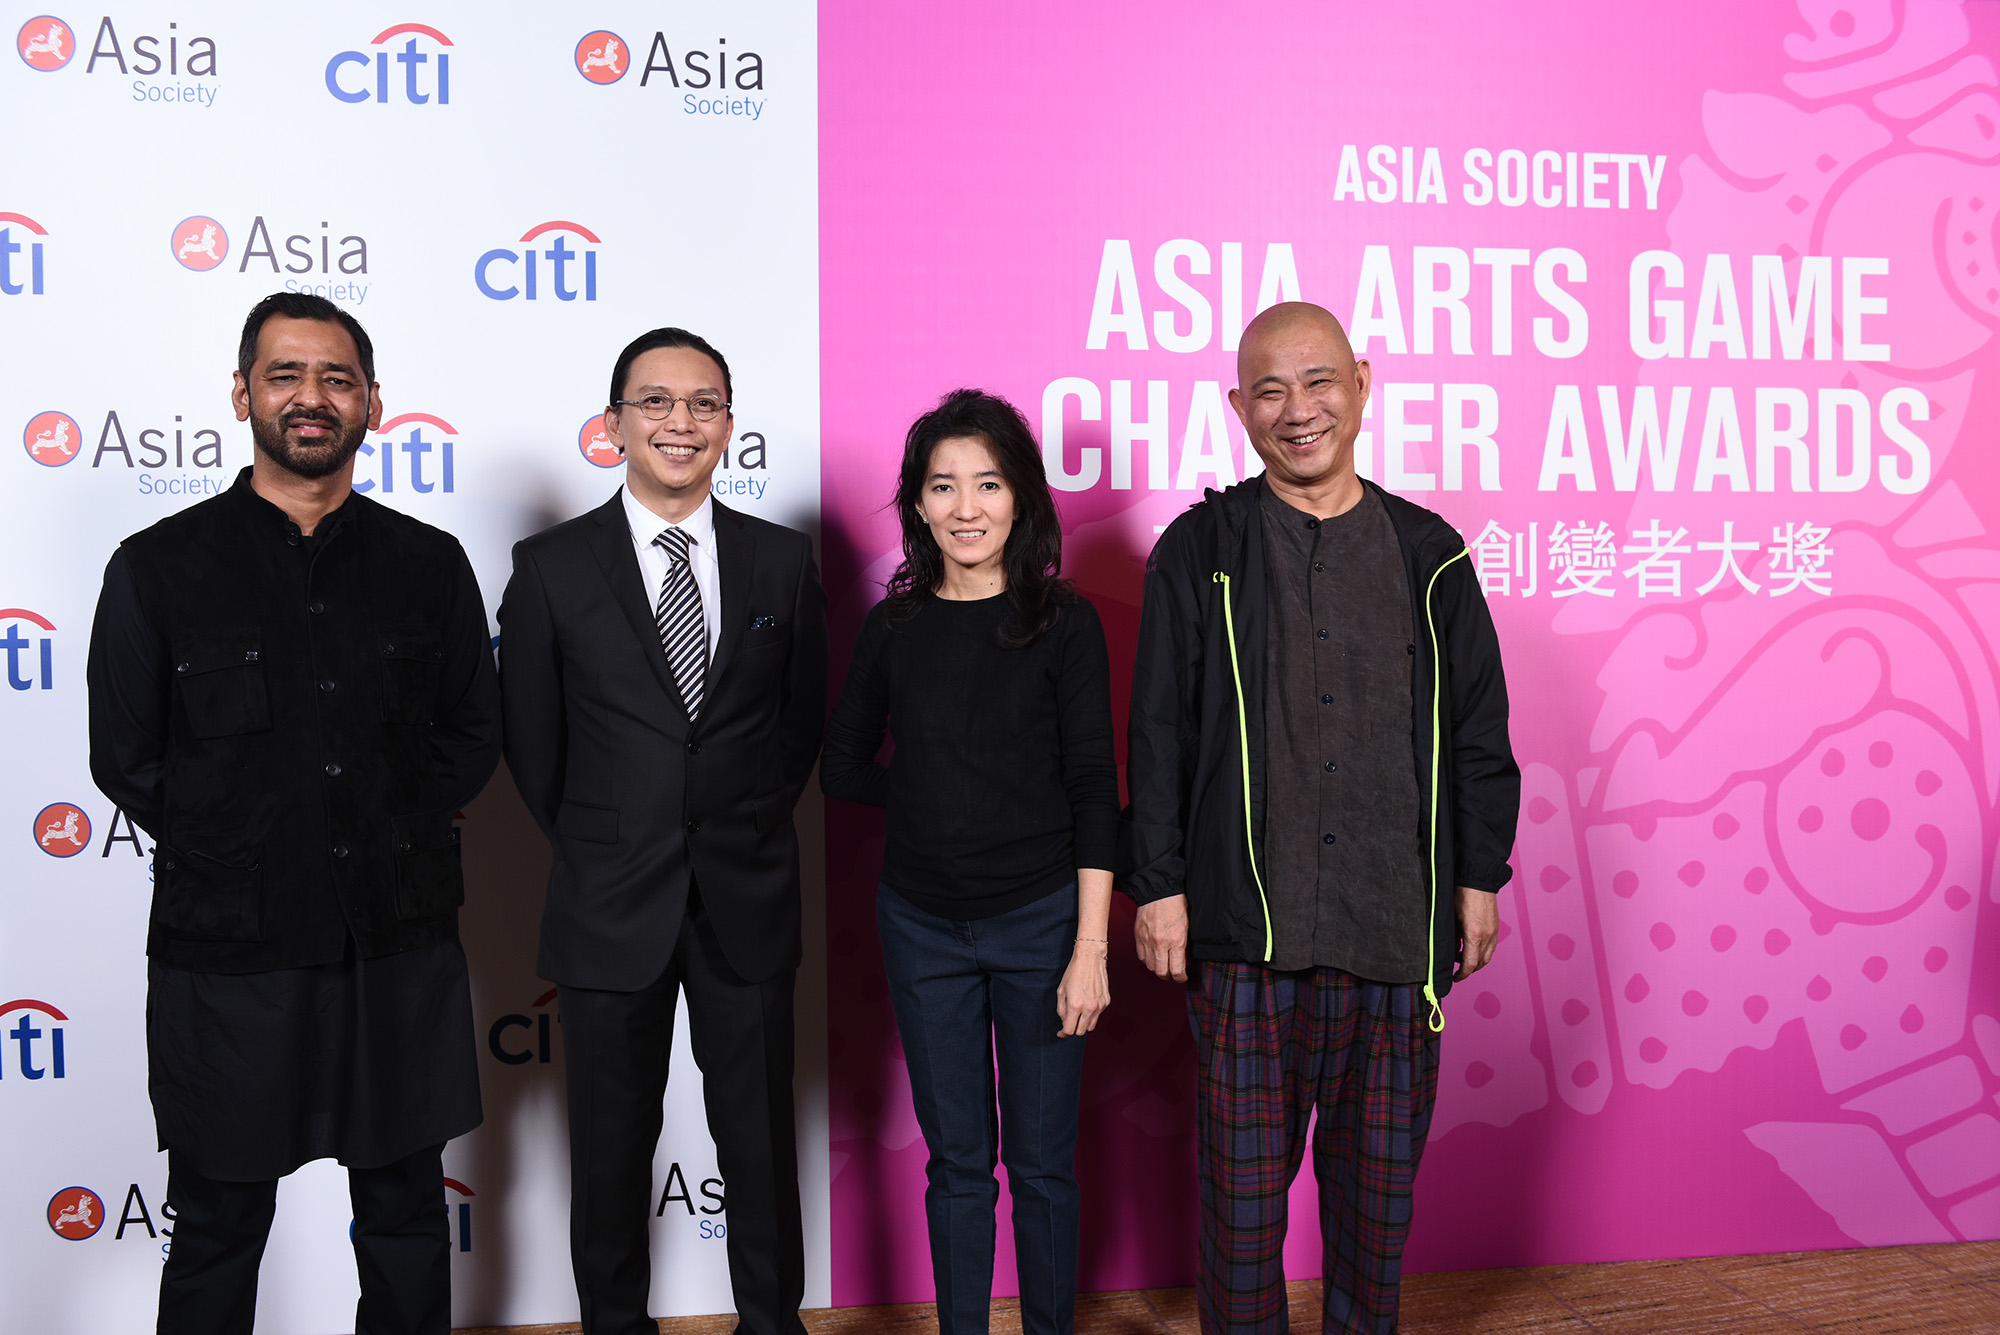 ArtAsiaPacific – FOUR ARTISTS RECOGNIZED AT 2019 HONG KONG ASIA ARTS GAME CHANGER AWARDS